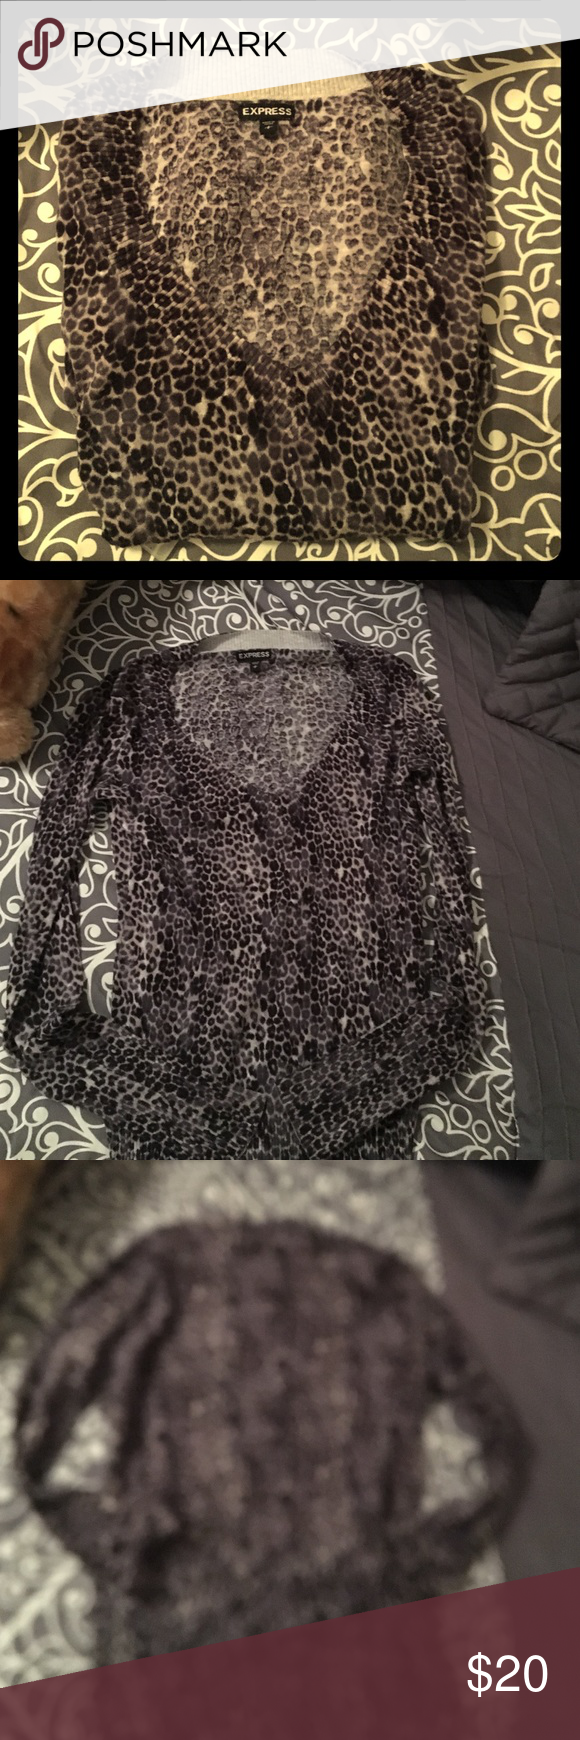 Leopard print sweater Express v neck leopard print sweater. Size small. Excellent condition. Always line dried it never put it in the dryer to make sure it didn't shrink. Express Sweaters V-Necks